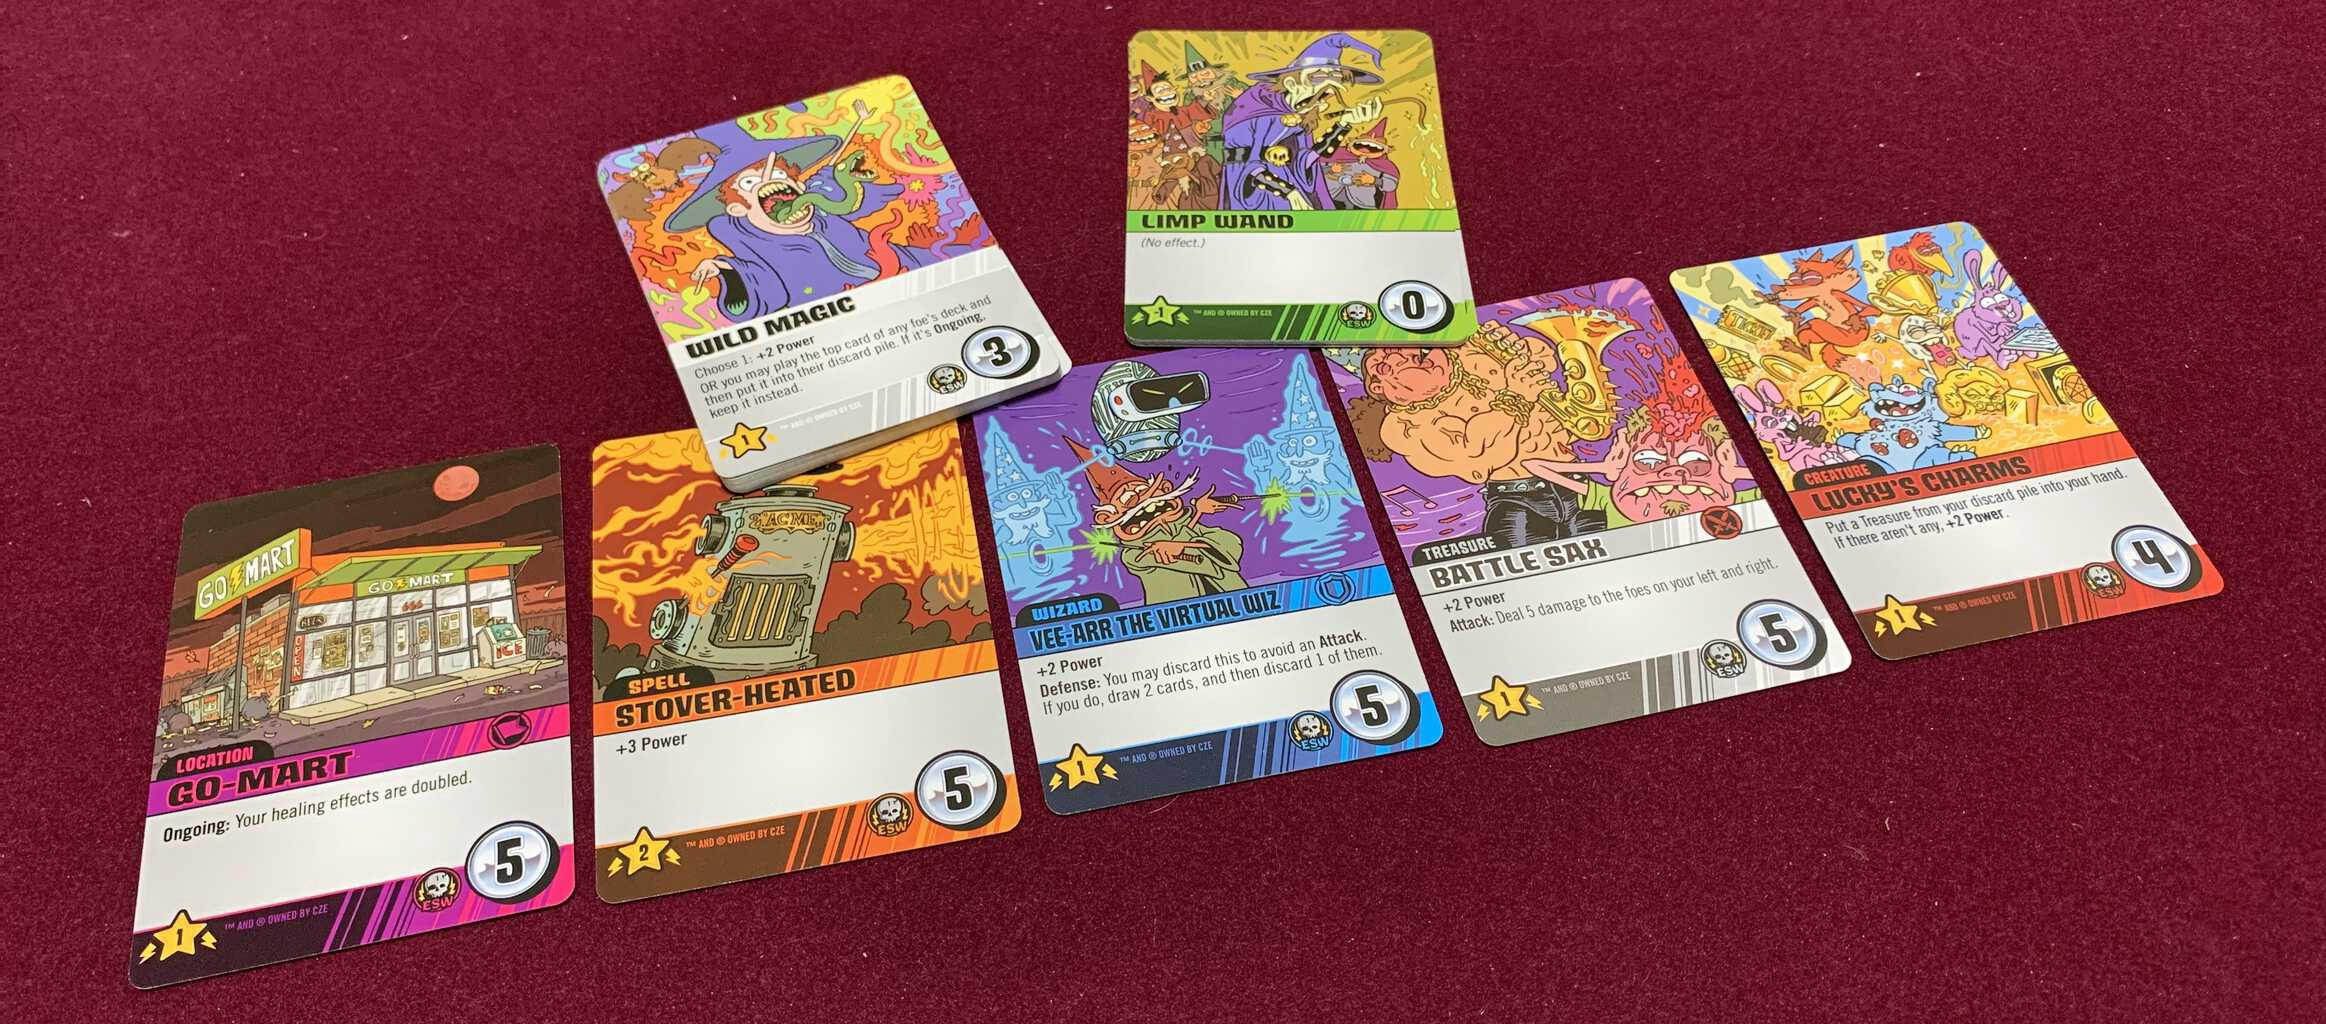 Epic Spell Wars of the Battle Wizards: ANNIHILAGEDDON Deck-Building Game - Cryptozoic Entertainment - Review 11